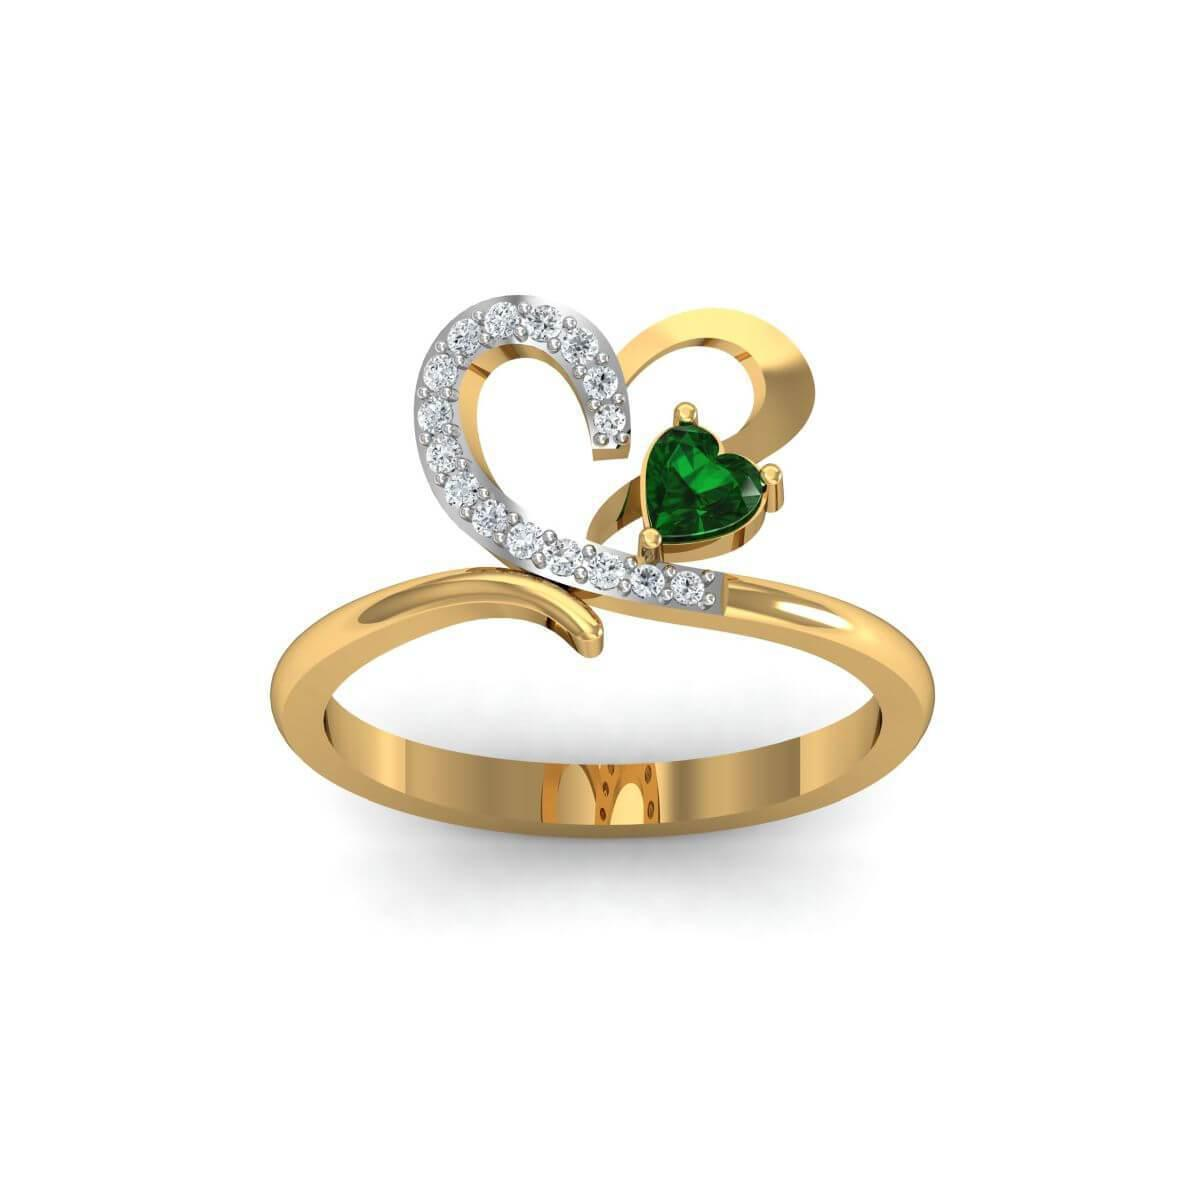 Diamoire Jewels 18kt Yellow Gold Pave 0.04ct Diamond Infinity Ring With Emerald - UK G 1/4 - US 3 1/2 - EU 45 3/4 LCzmZIfJ